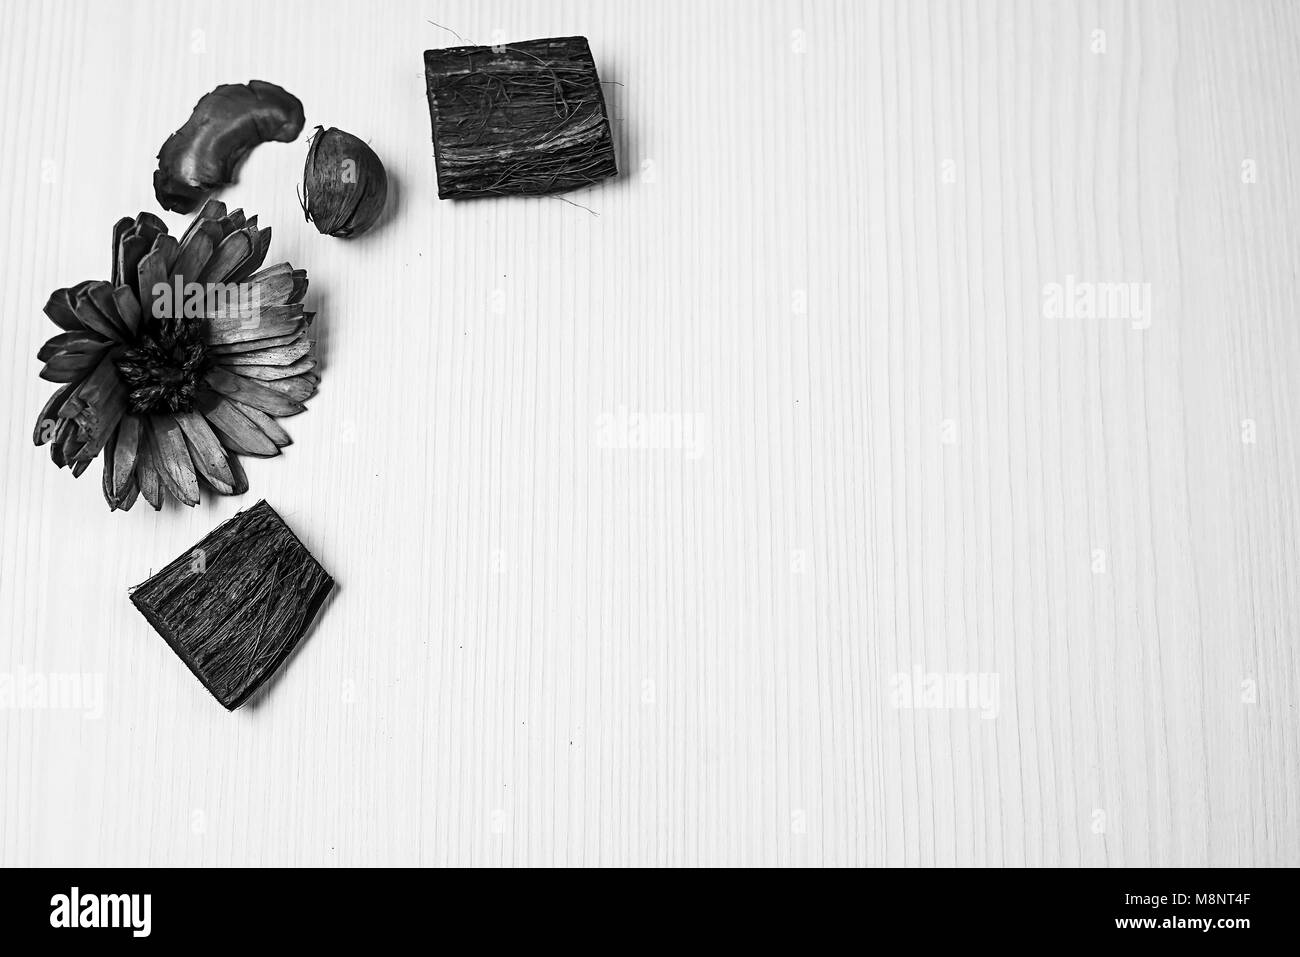 The Frame Of Dried Flowers Black And White Poster Stock Photo